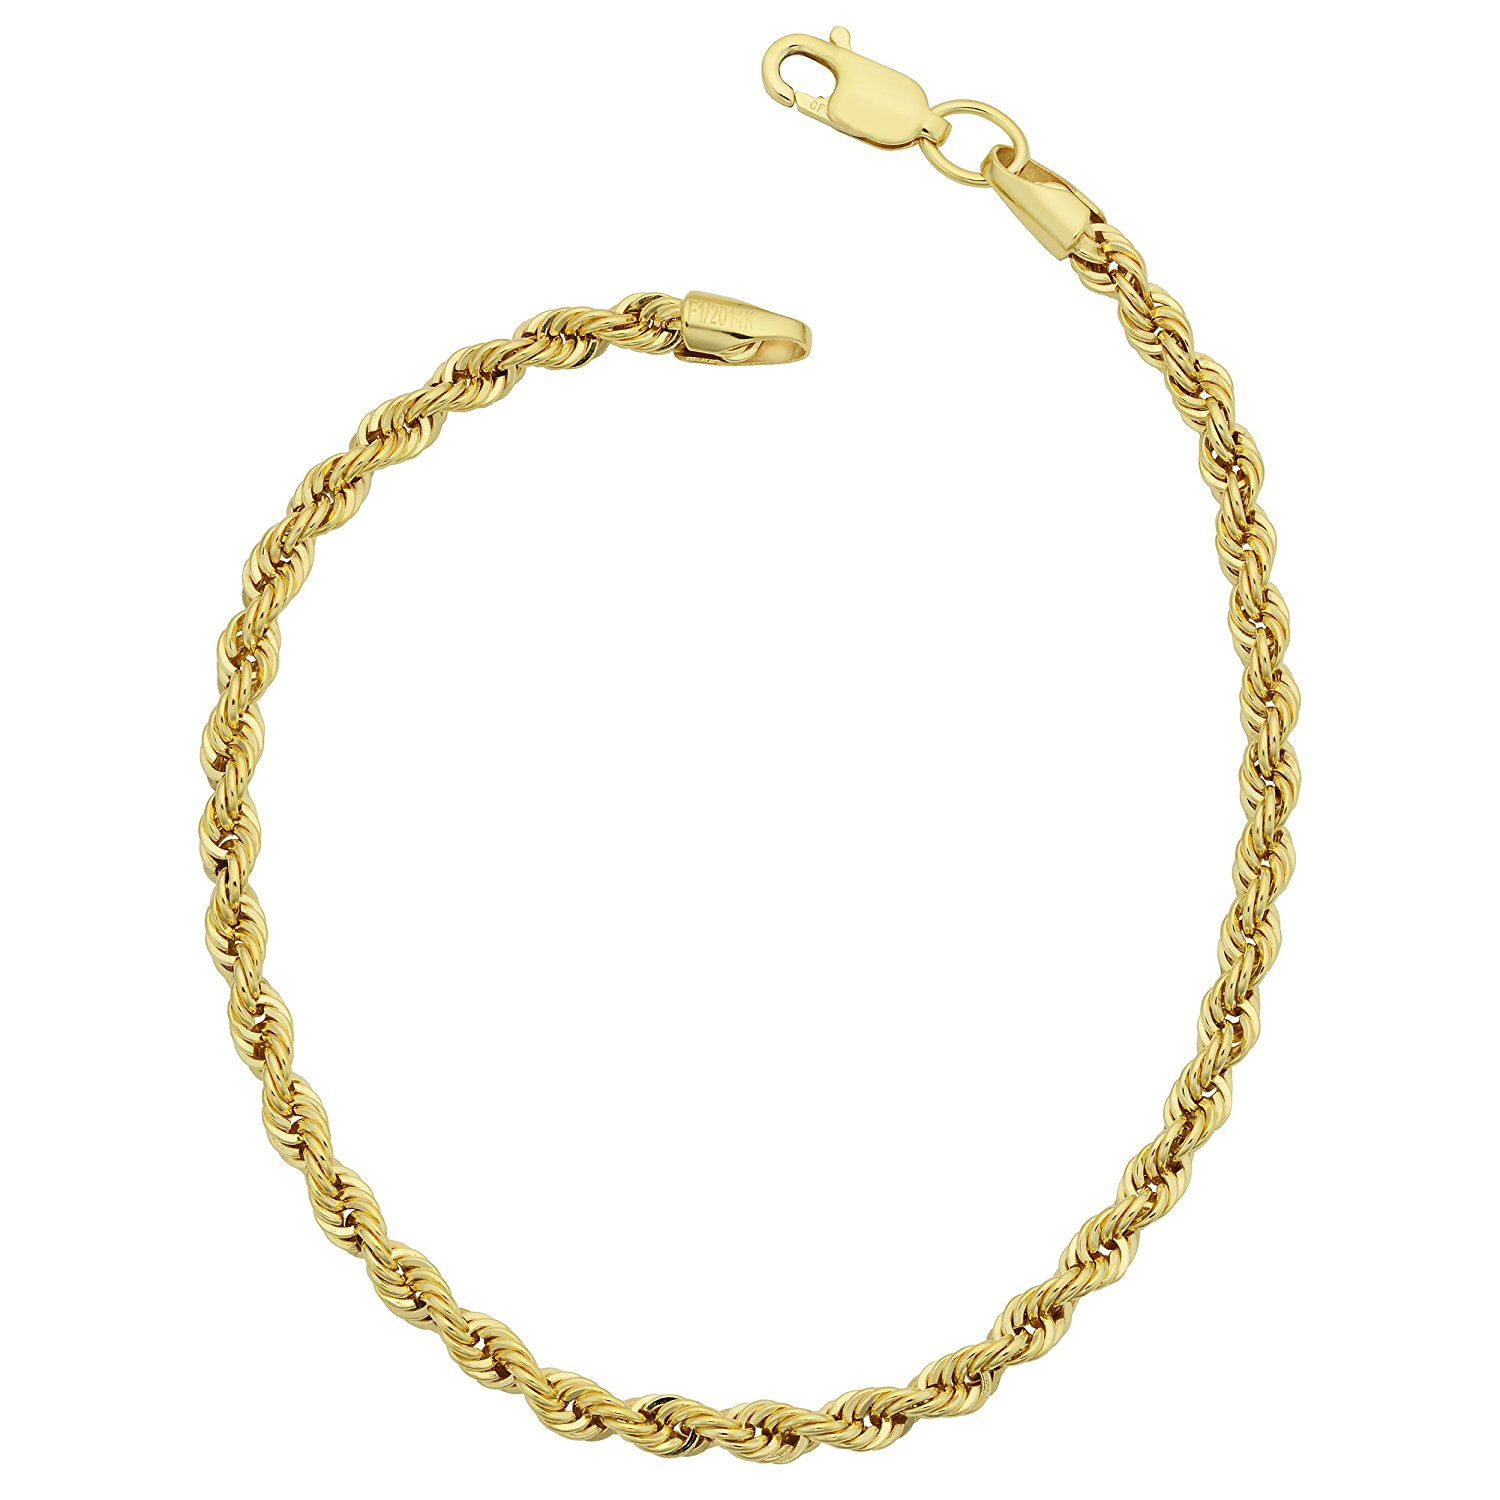 14K Yellow Gold Filled Solid Rope Chain Bracelet, 3.2mm, 8.5″